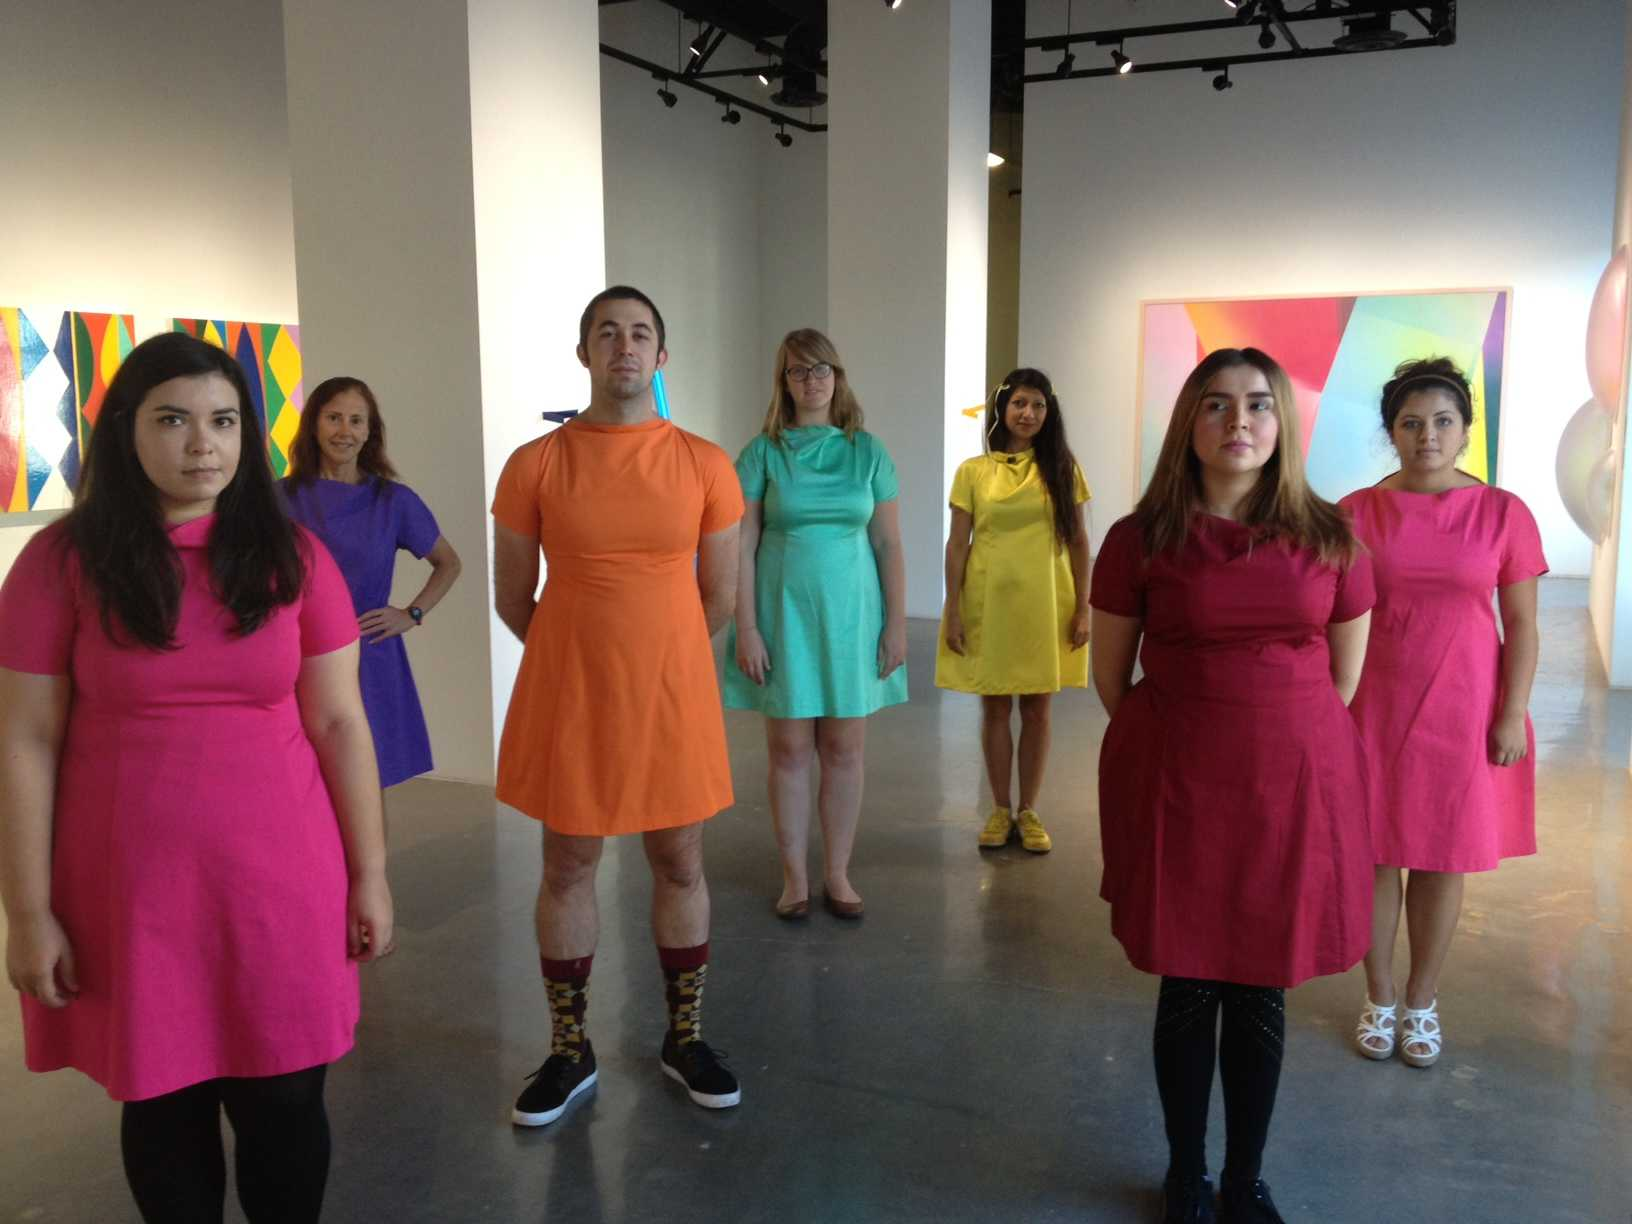 Colorful performance art at Downtown Gallery